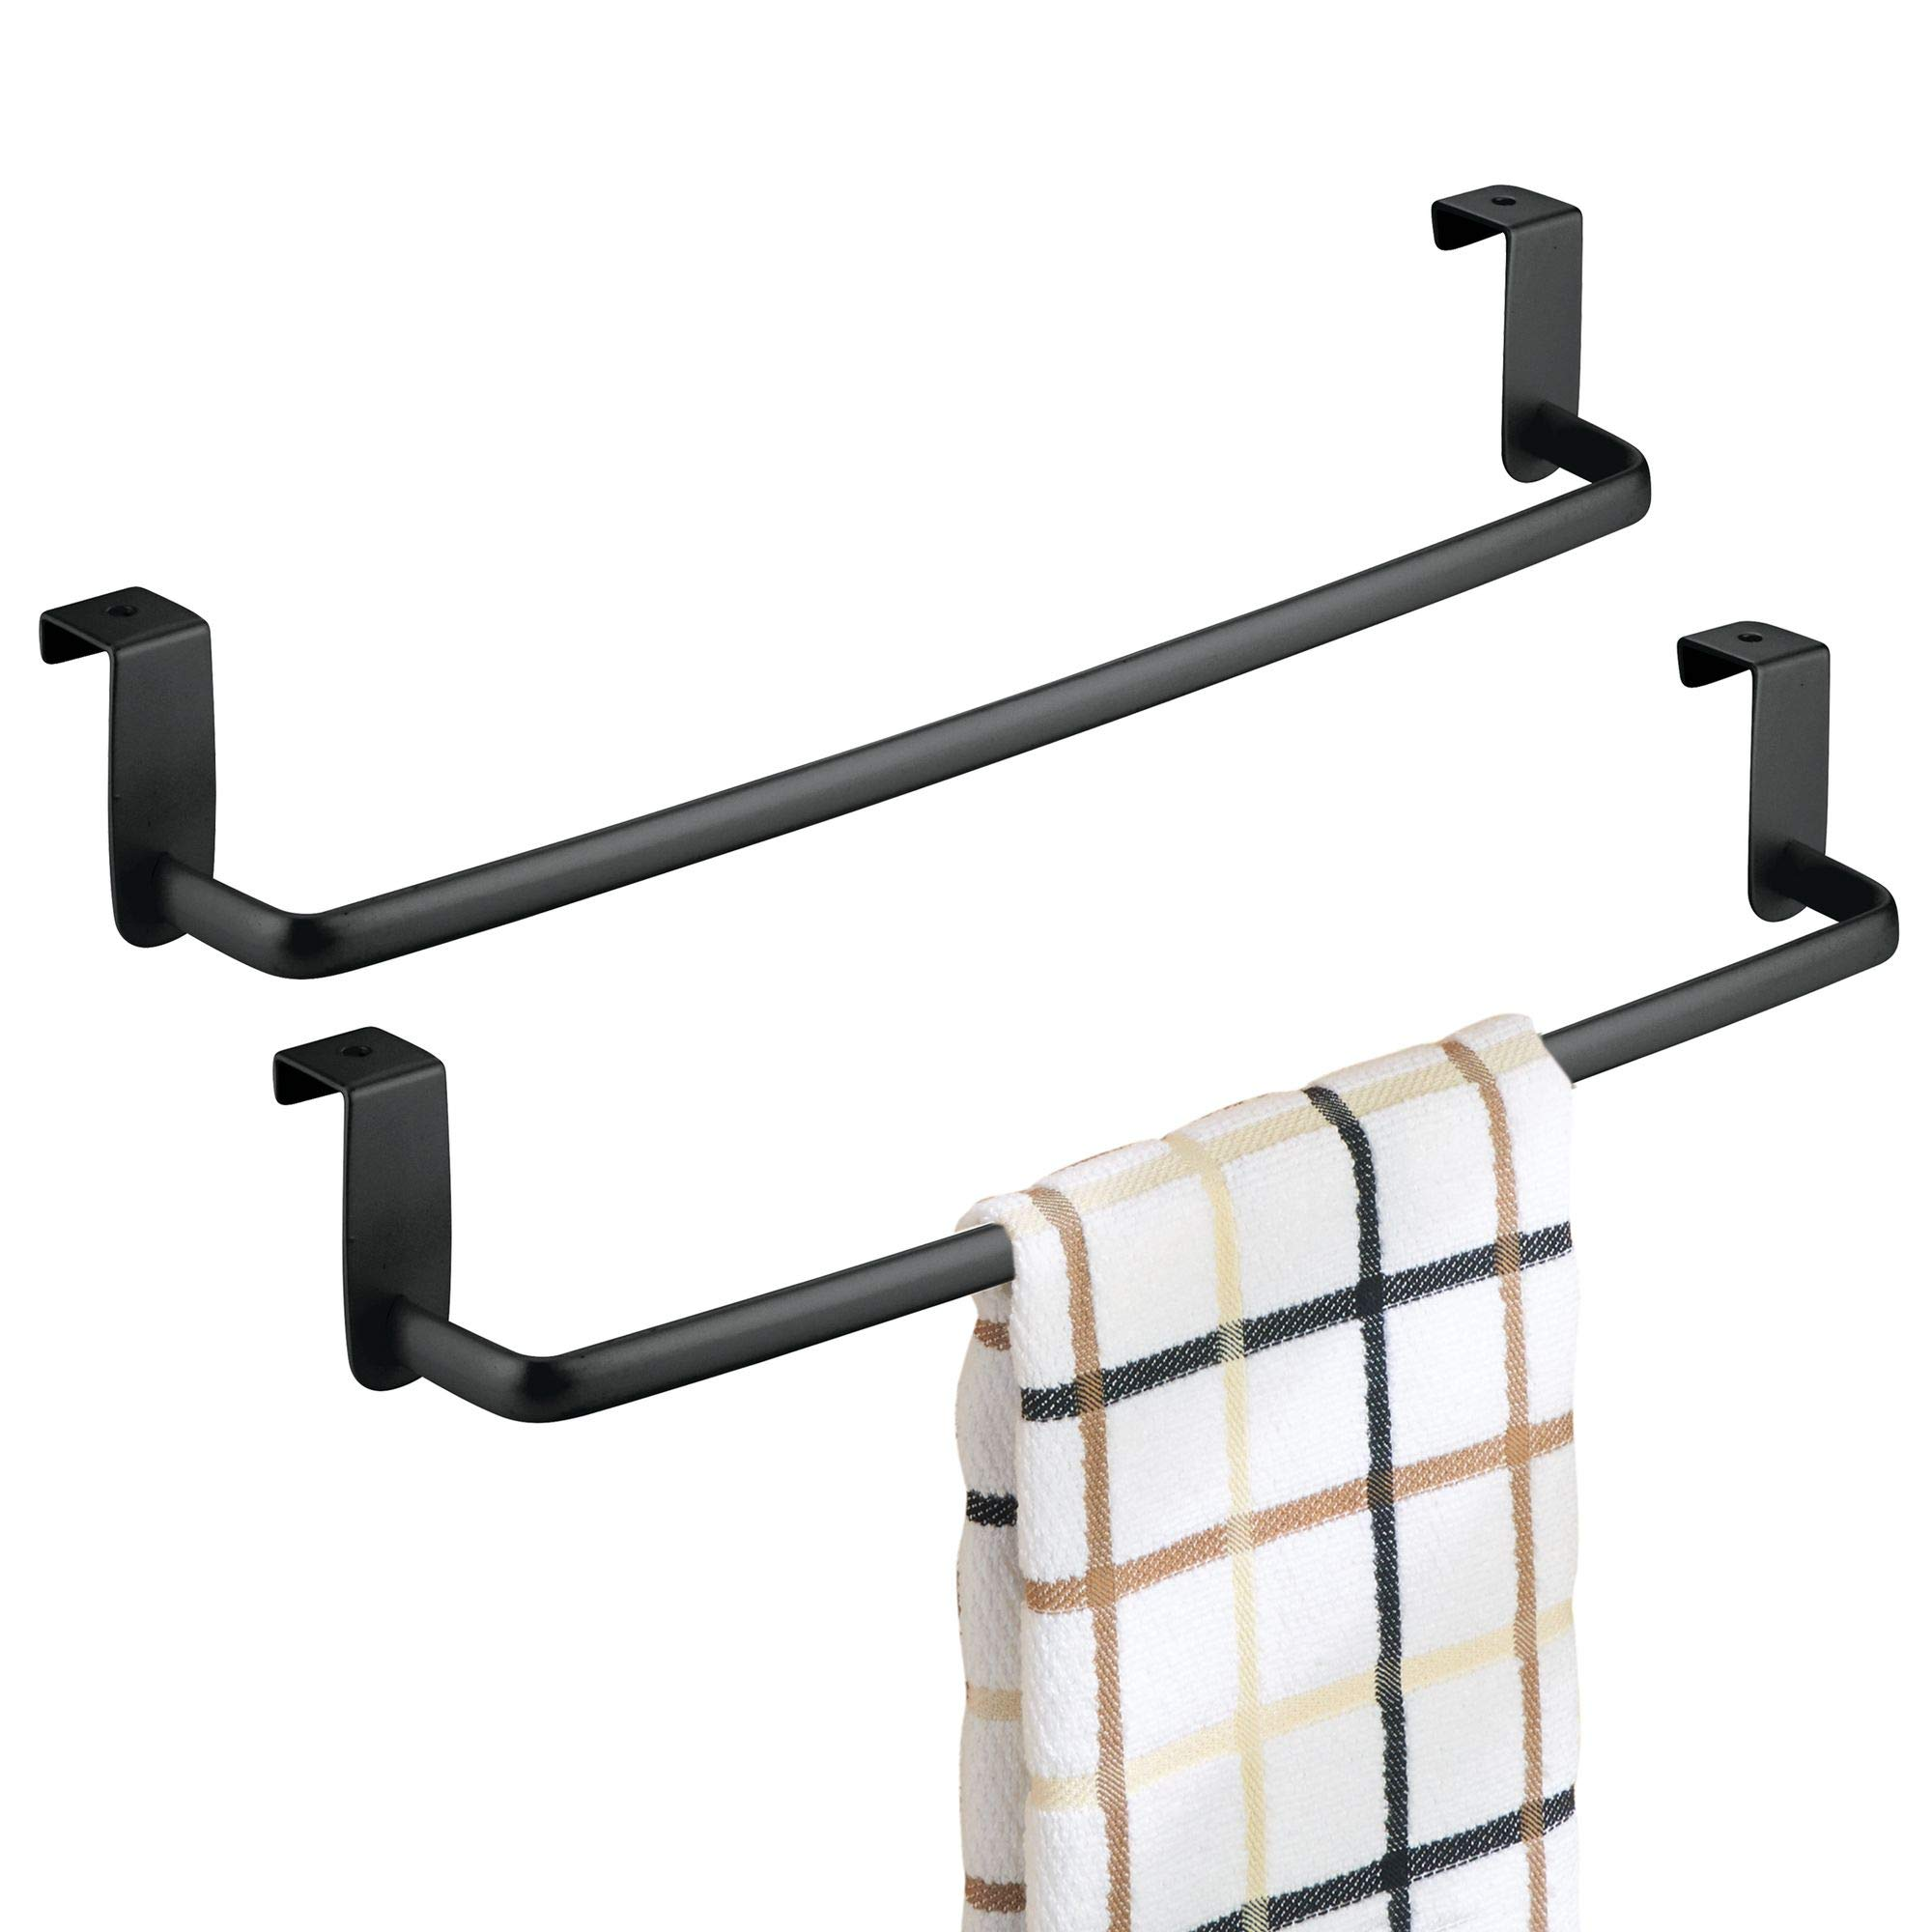 mDesign Kitchen Storage Over Cabinet Curved Steel Towel Bar - Hang on Inside or Outside of Doors, for Organizing and Hanging Hand, Dish, and Tea Towels - 14'' Wide, Pack of 2, Matte Black Finish